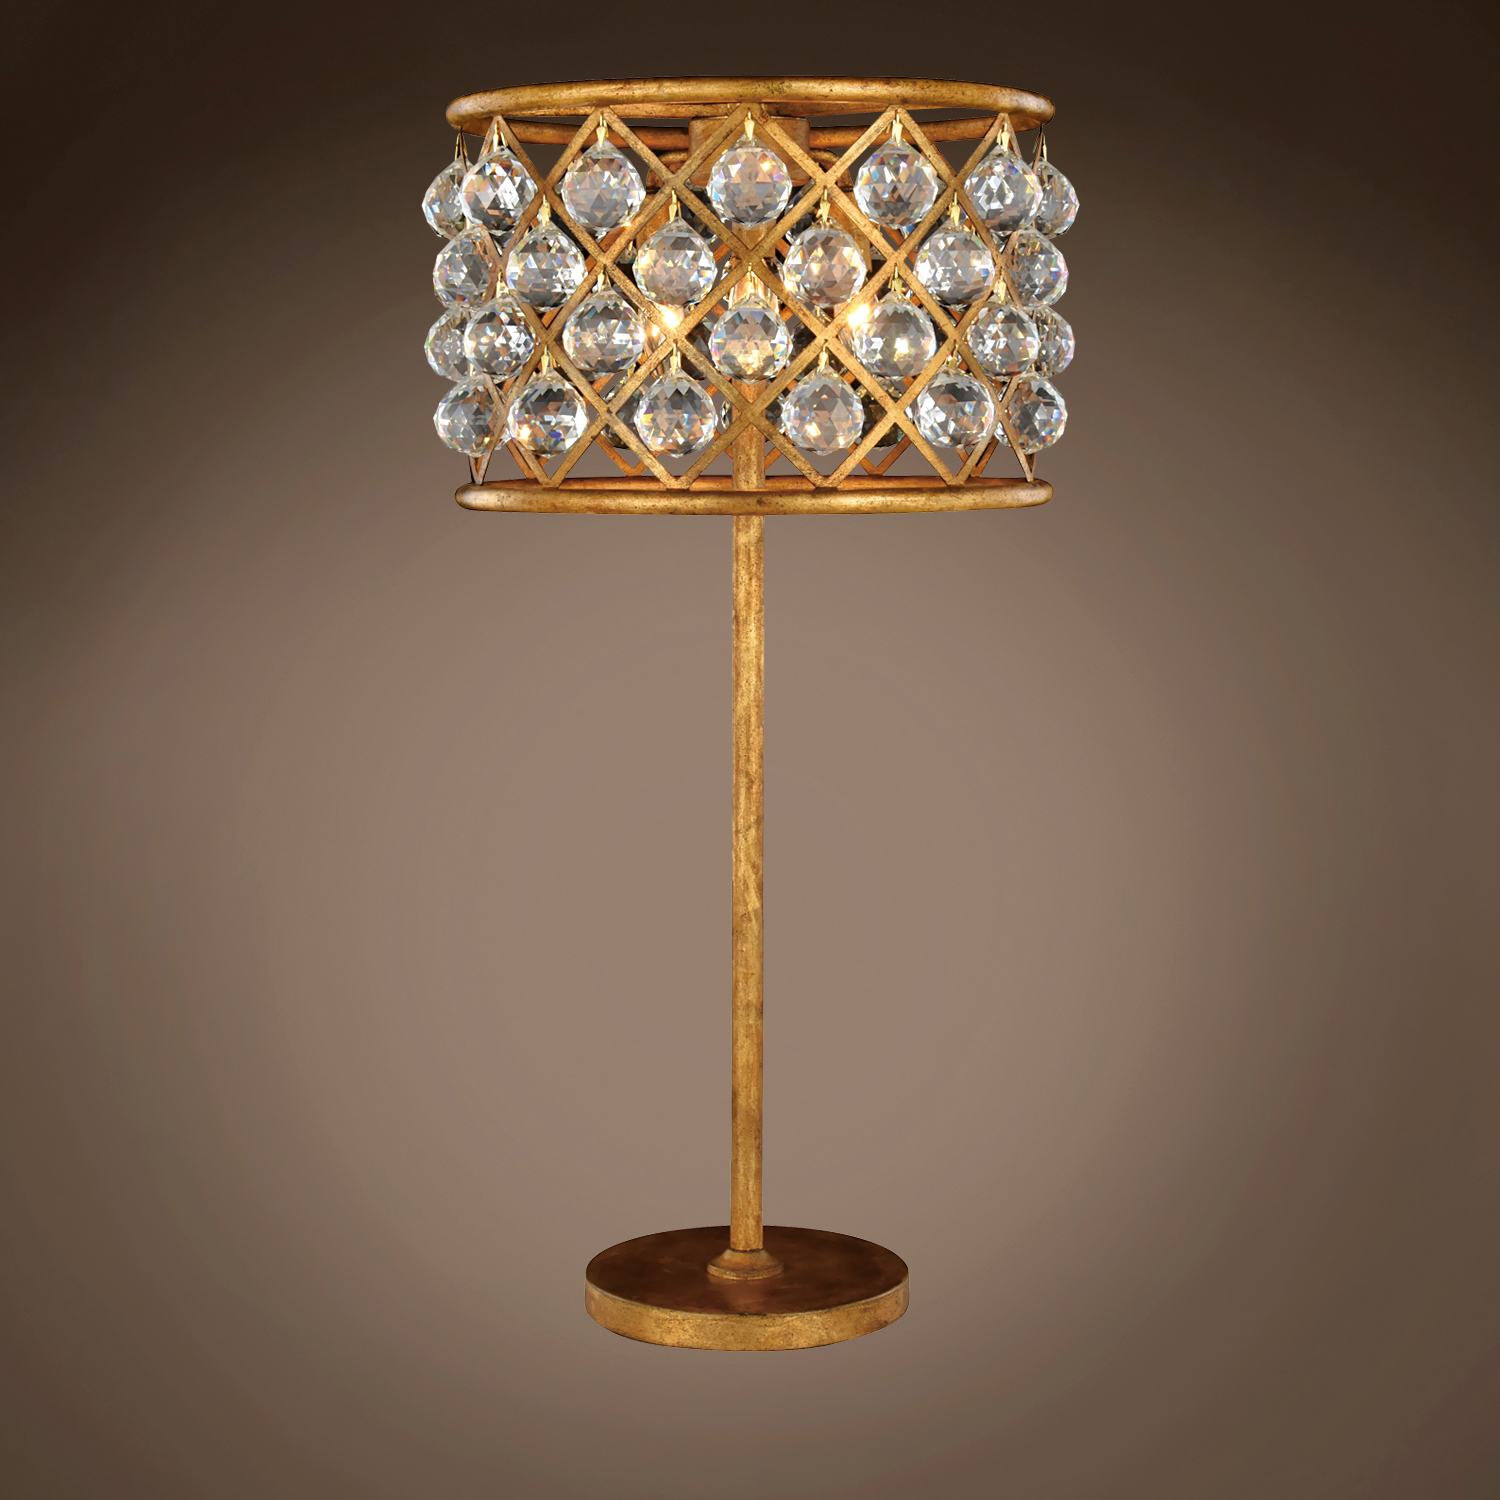 Restoration Revolution Spencer 3 Light 15 5 Crystal Table Lamp